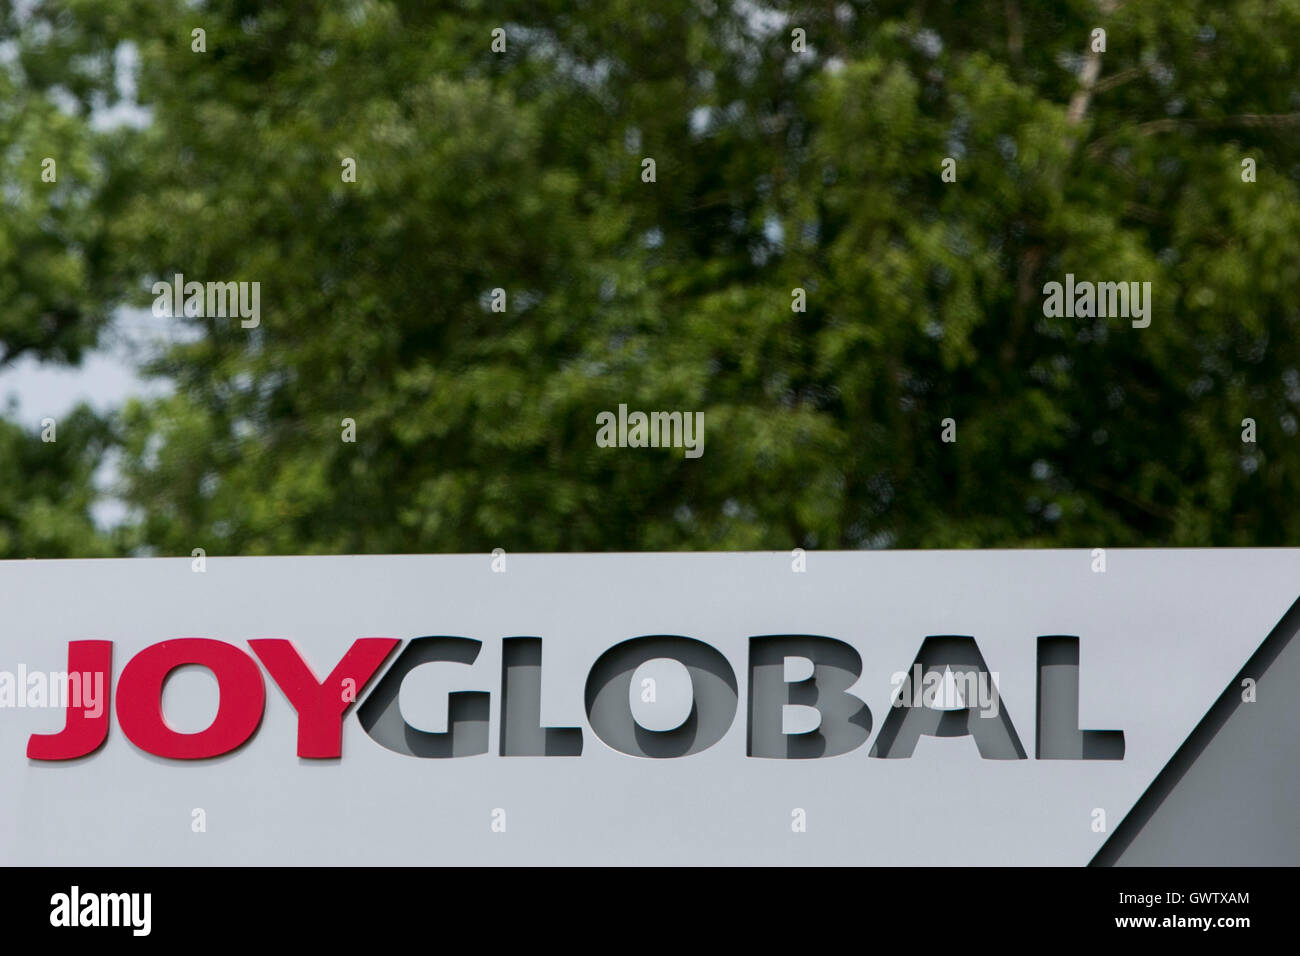 A logo sign outside of a Joy Global, Inc., facility in Cleveland, Ohio on July 21, 2016. - Stock Image